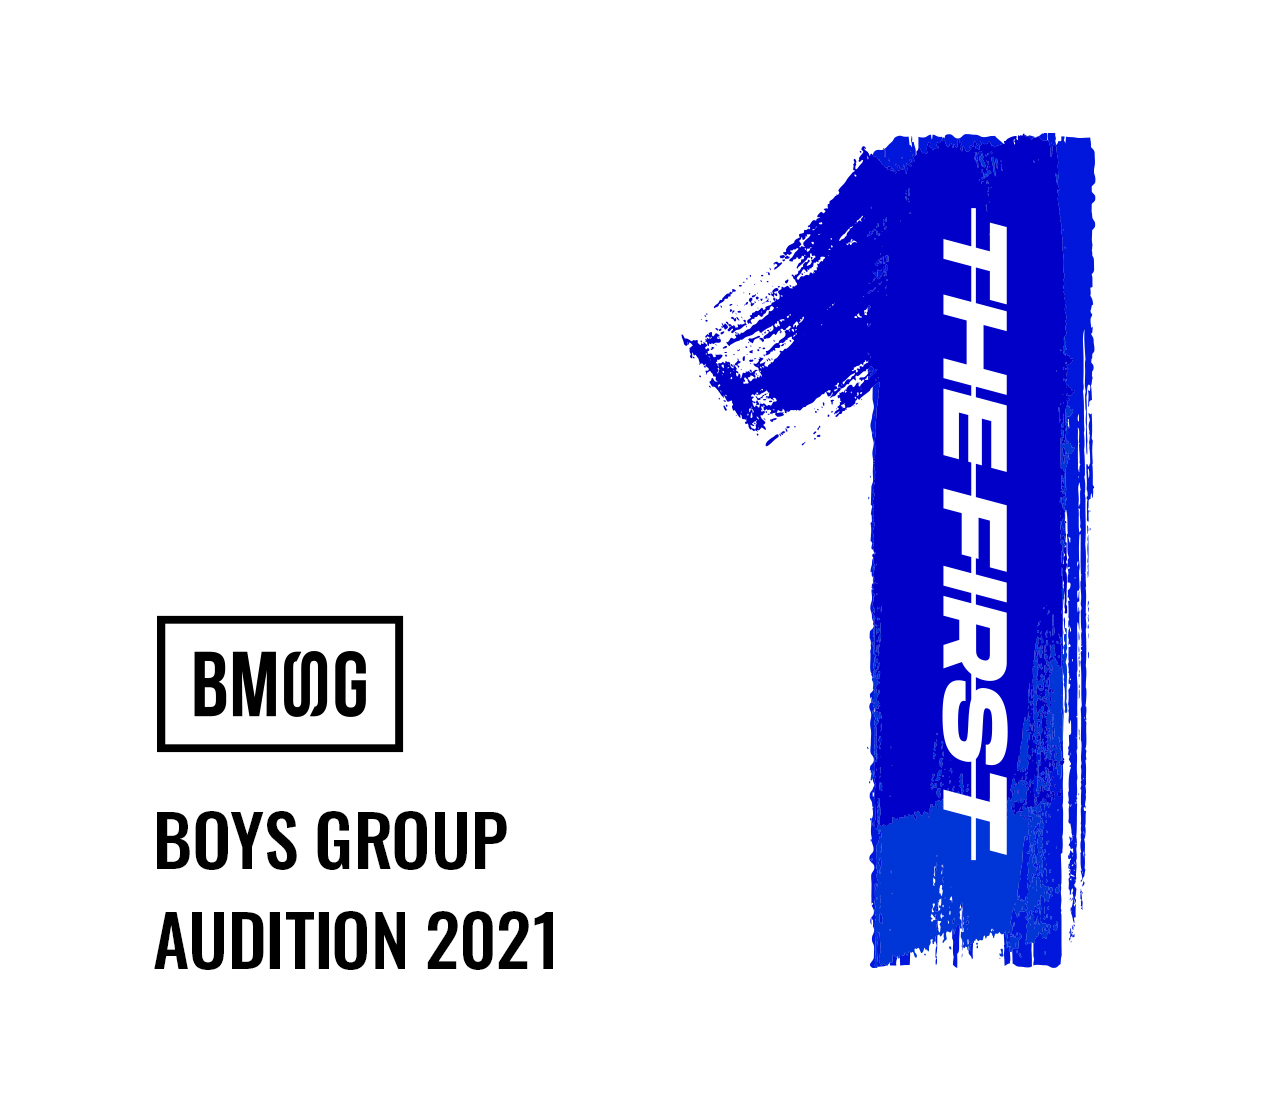 BMSG Audition 2021 ロゴ